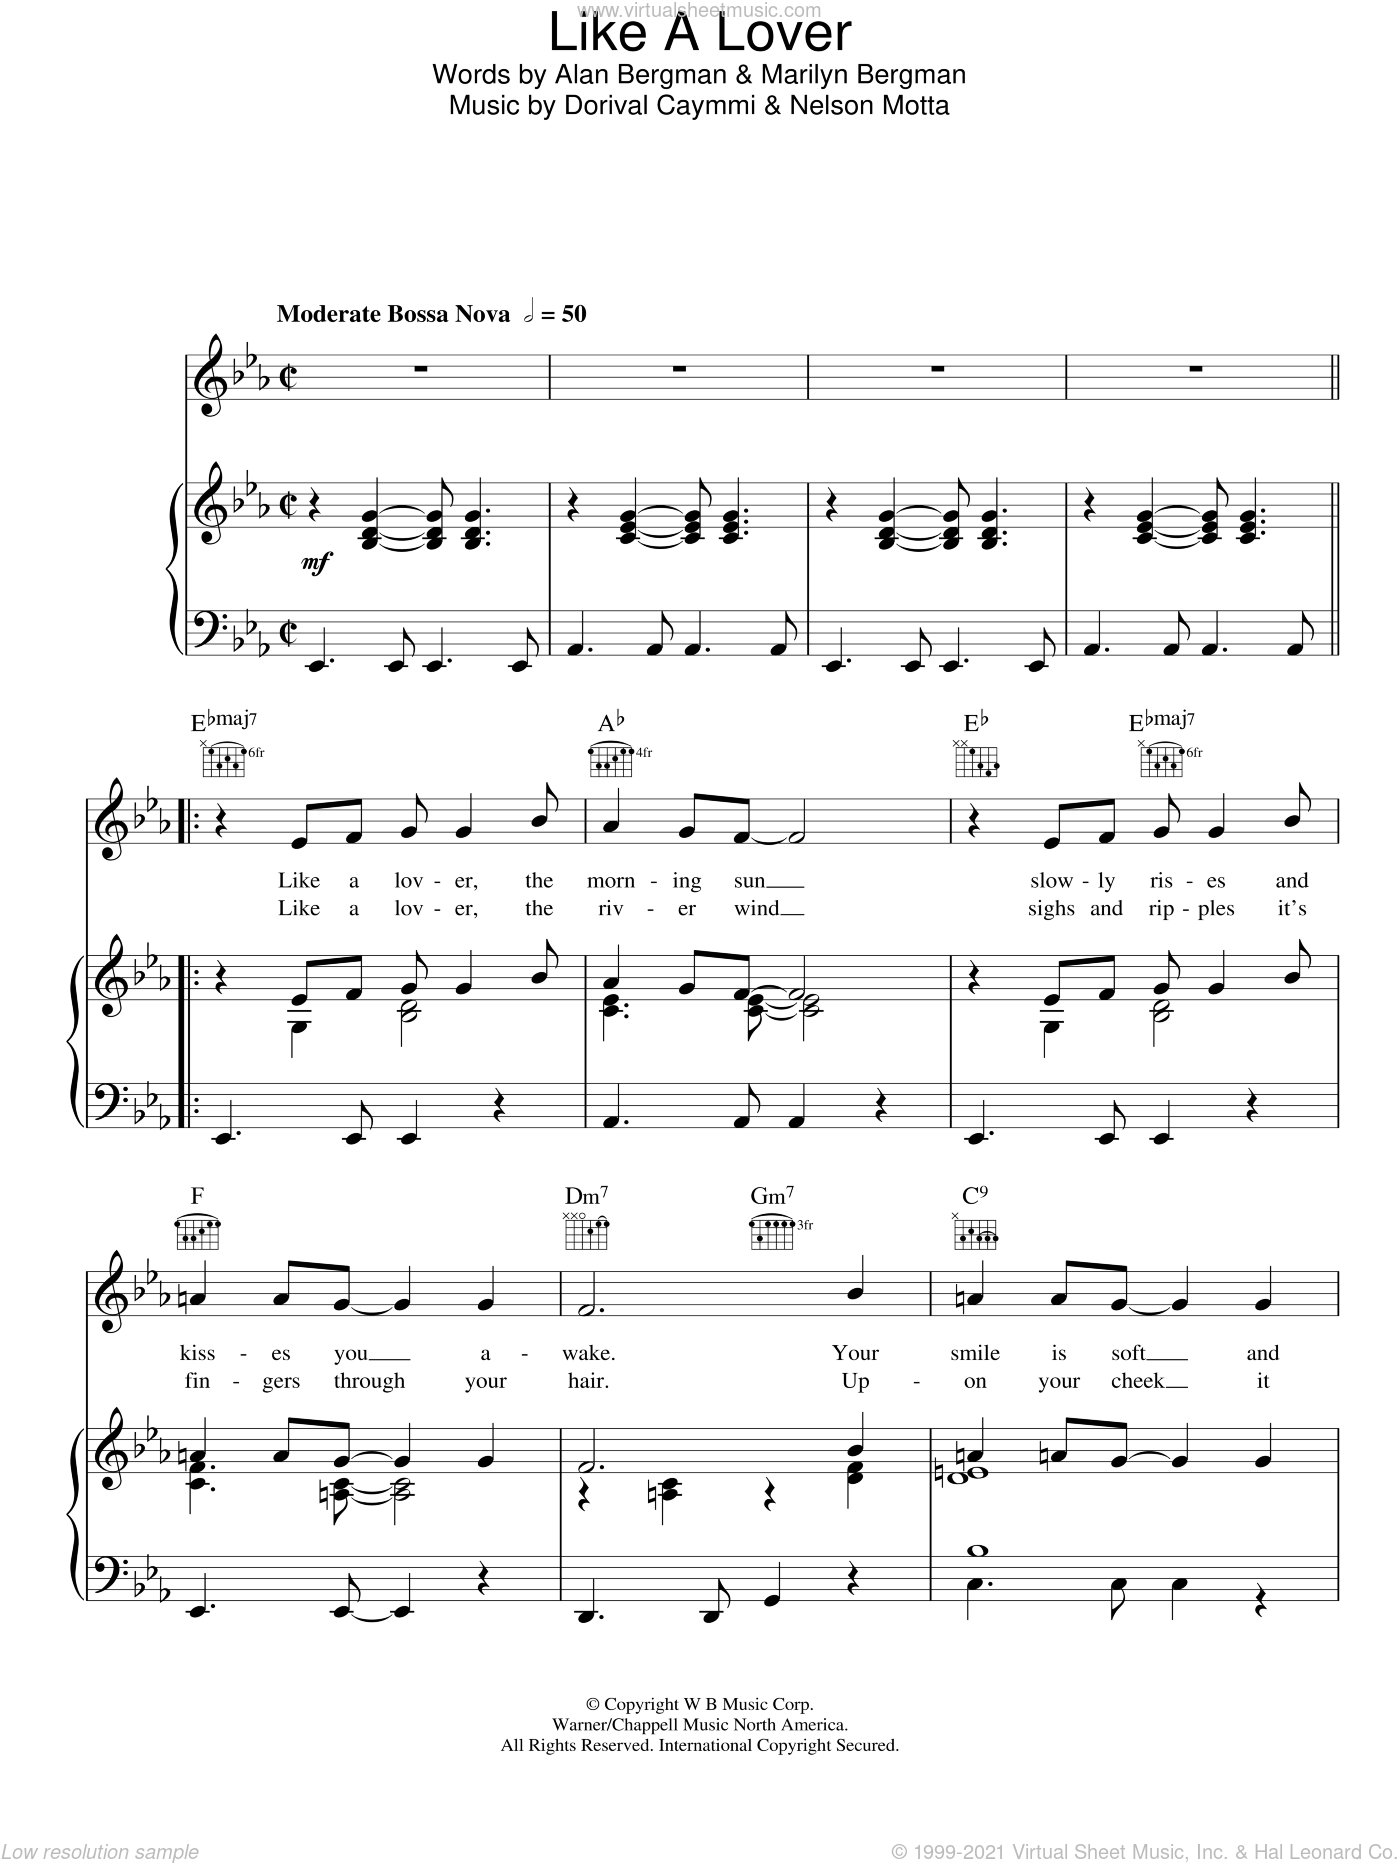 Like A Lover sheet music for voice, piano or guitar by Nelson Motta